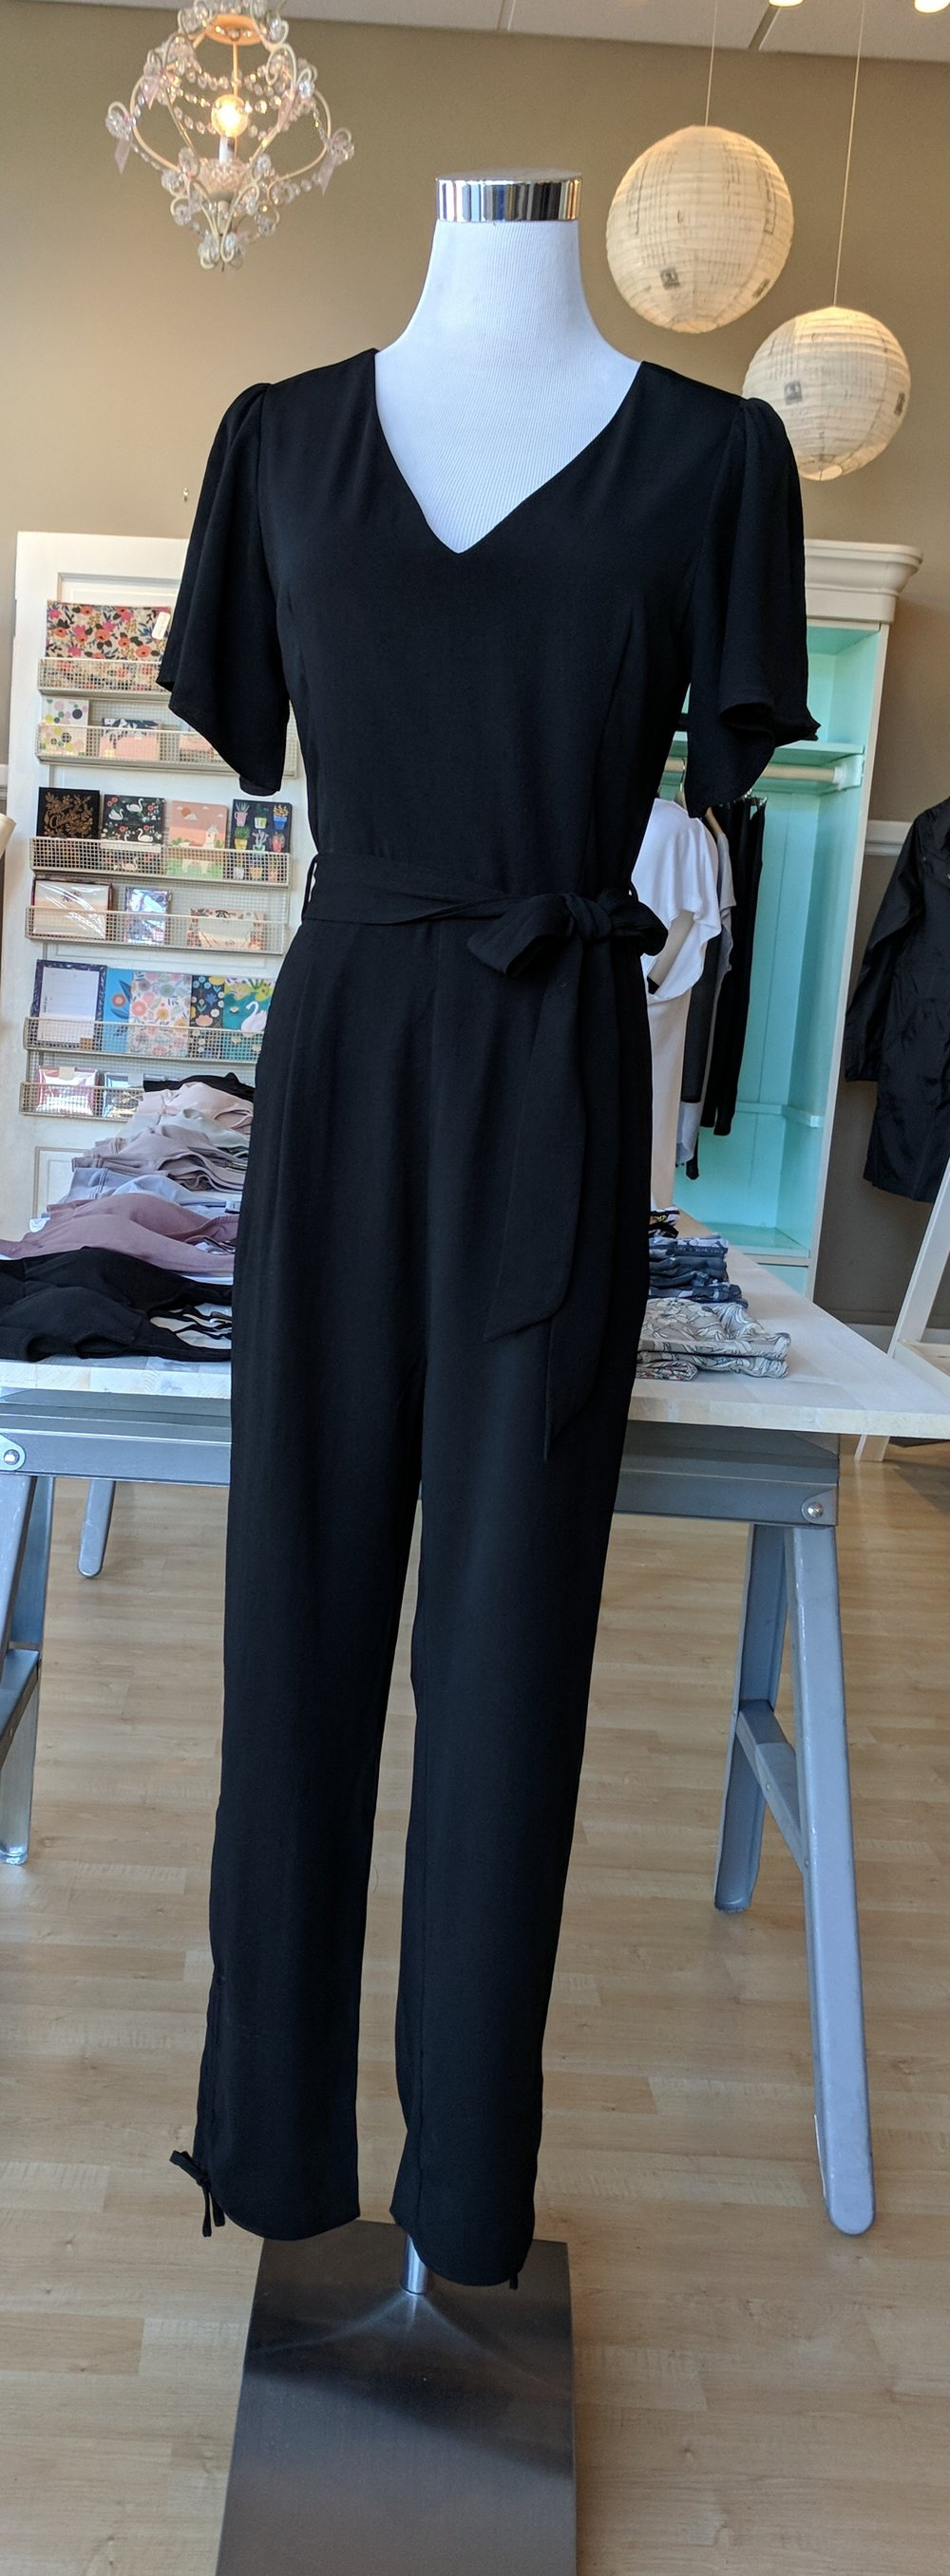 Black v-neck jumpsuit with tie $62